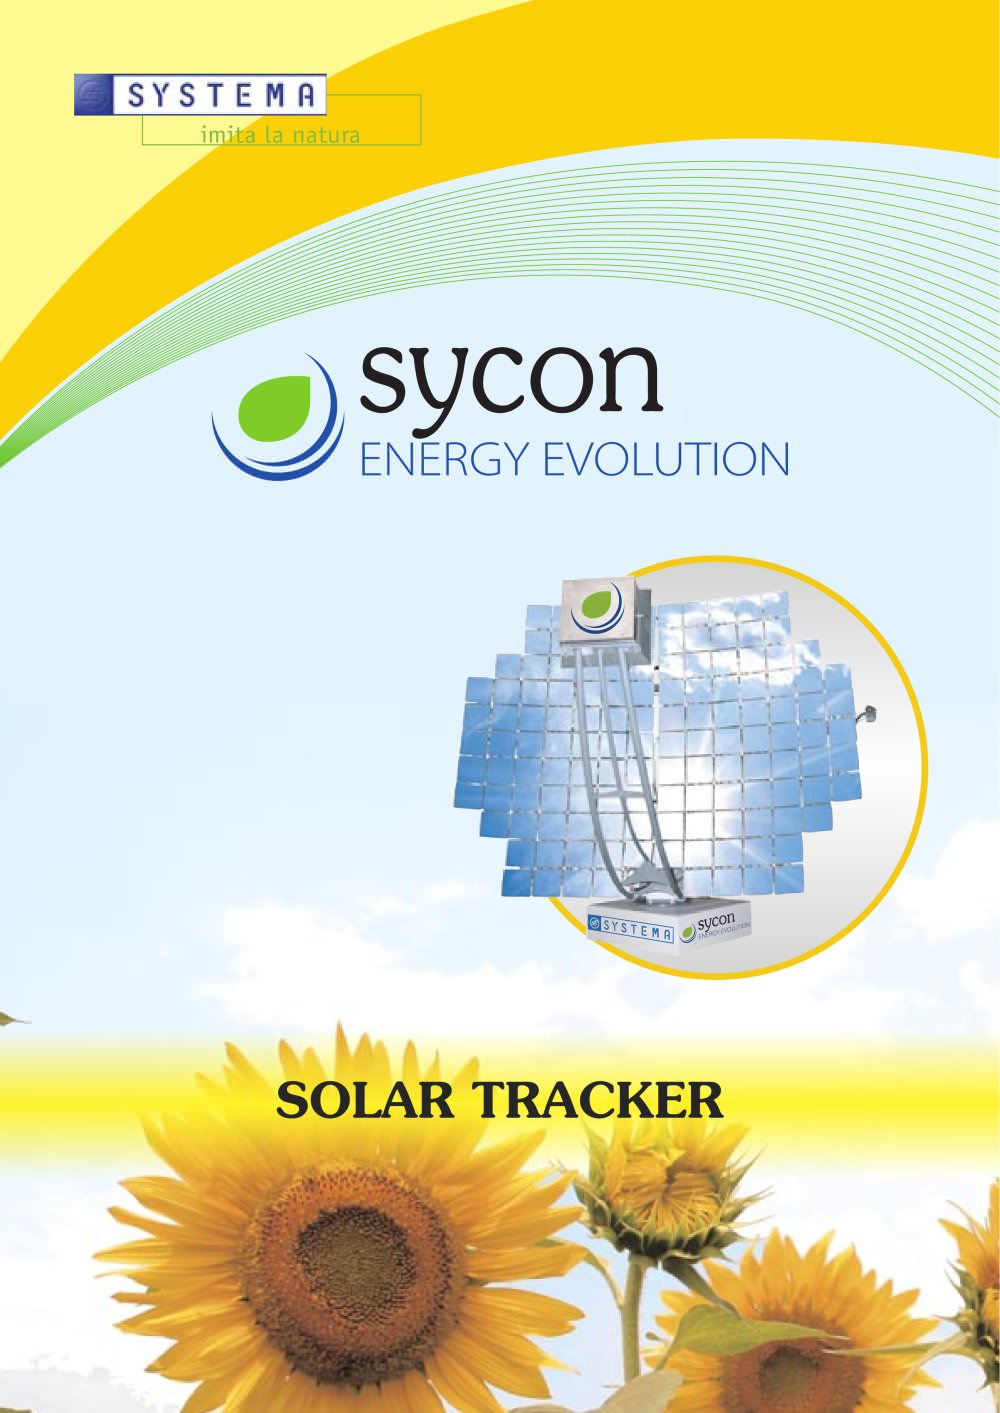 sycon concentrator powered by solar energy 90813 1b California Solar Panel Rebates